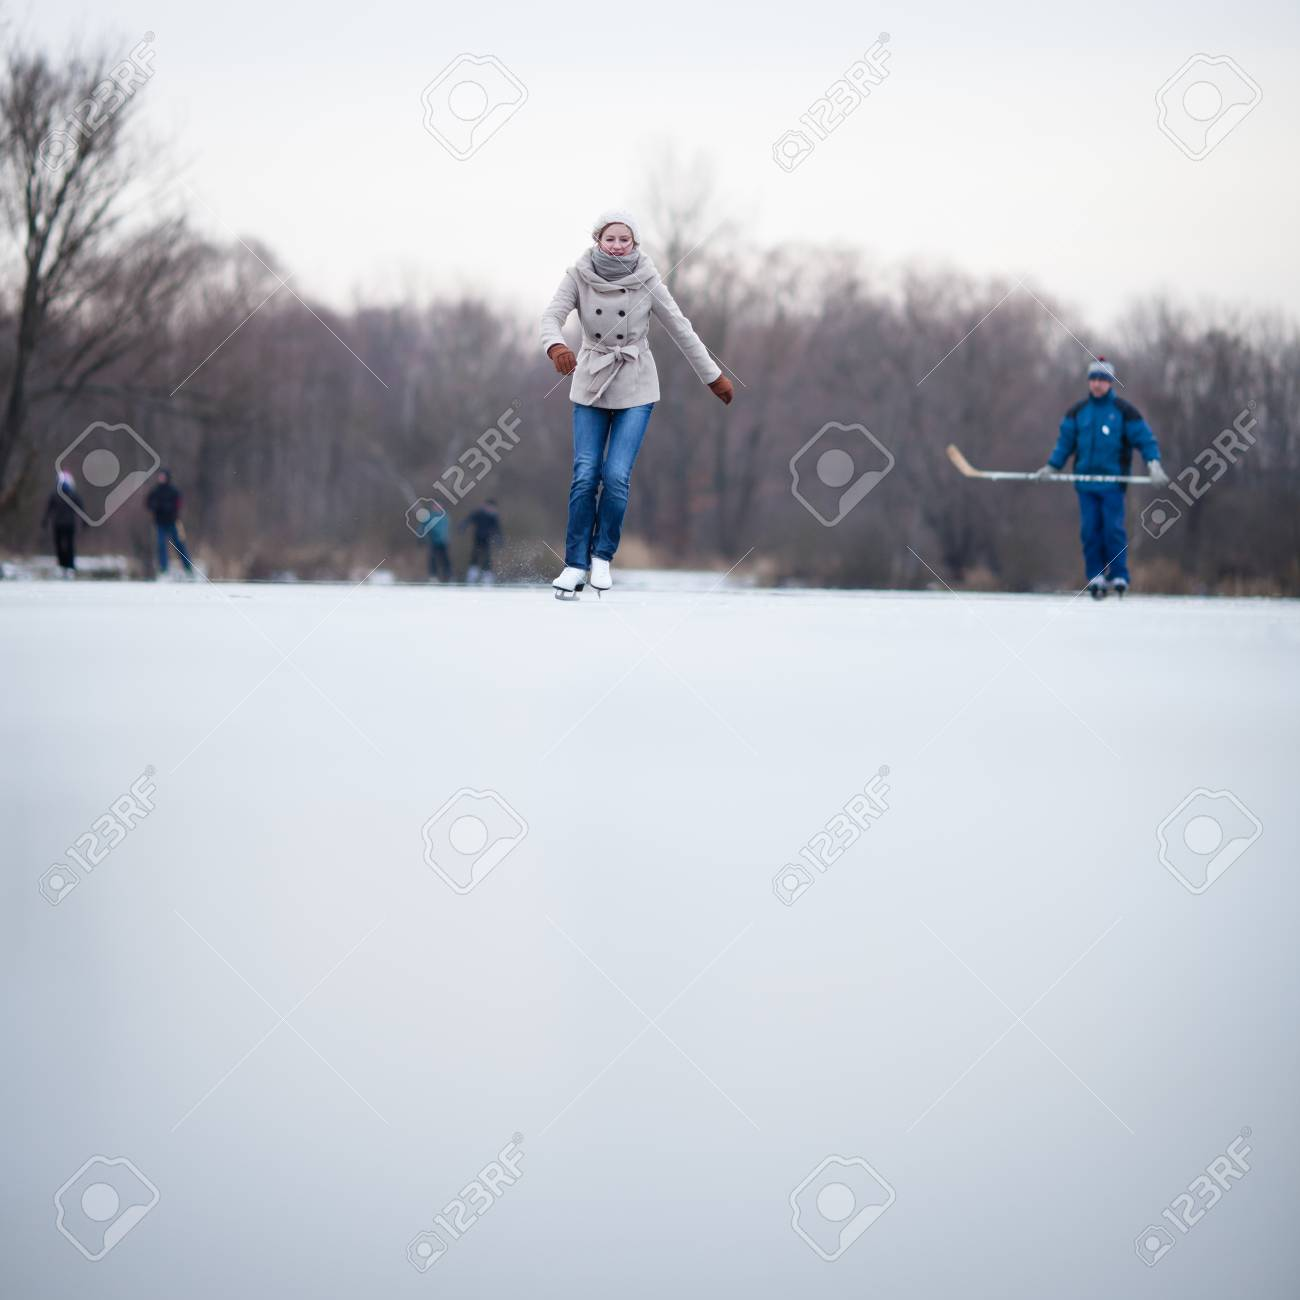 Young woman ice skating outdoors on a pond on a freezing winter day Stock Photo - 12405836